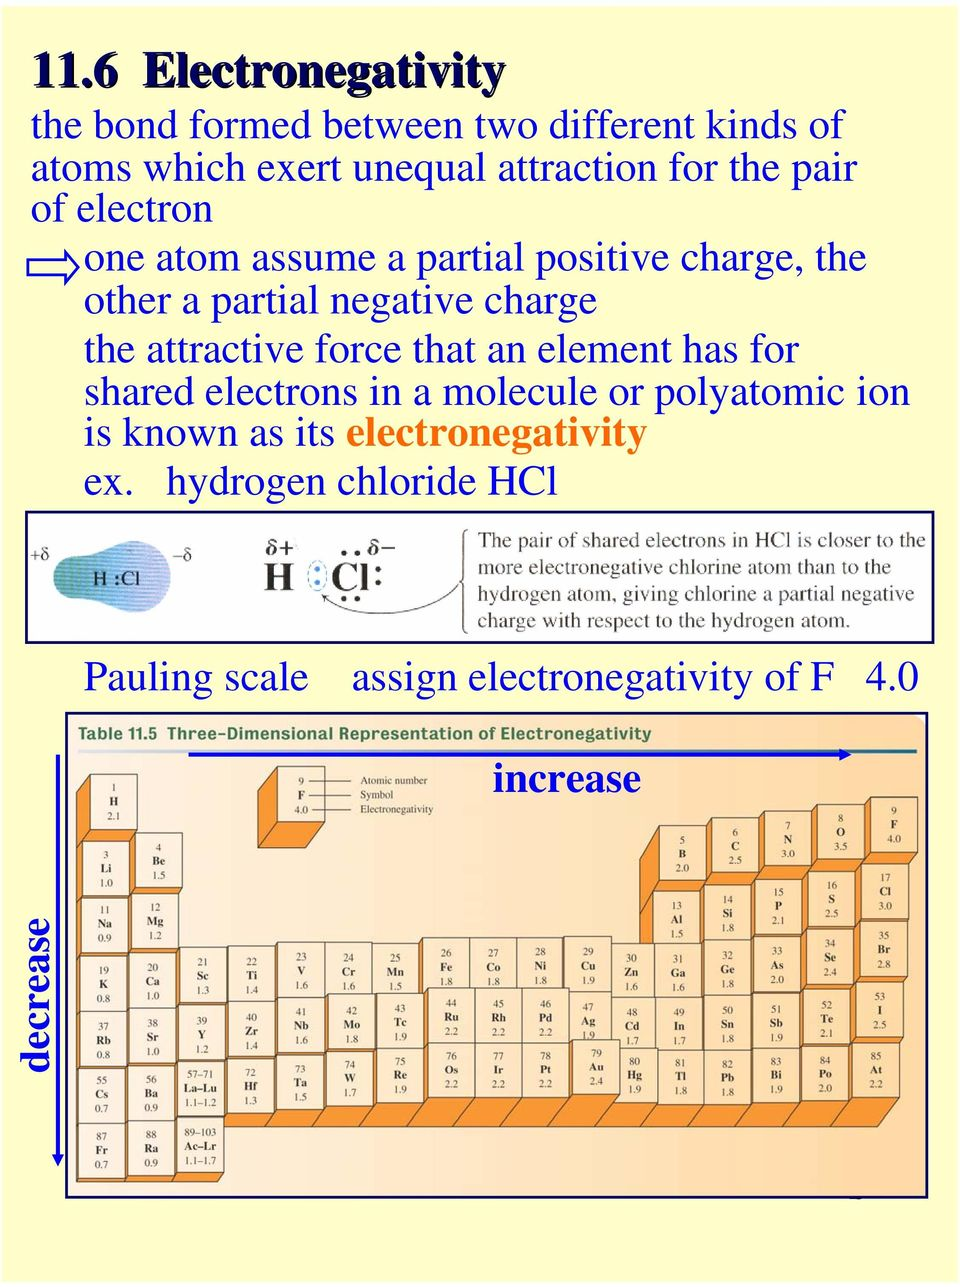 attractive force that an element has for shared electrons in a molecule or polyatomic ion is known as its